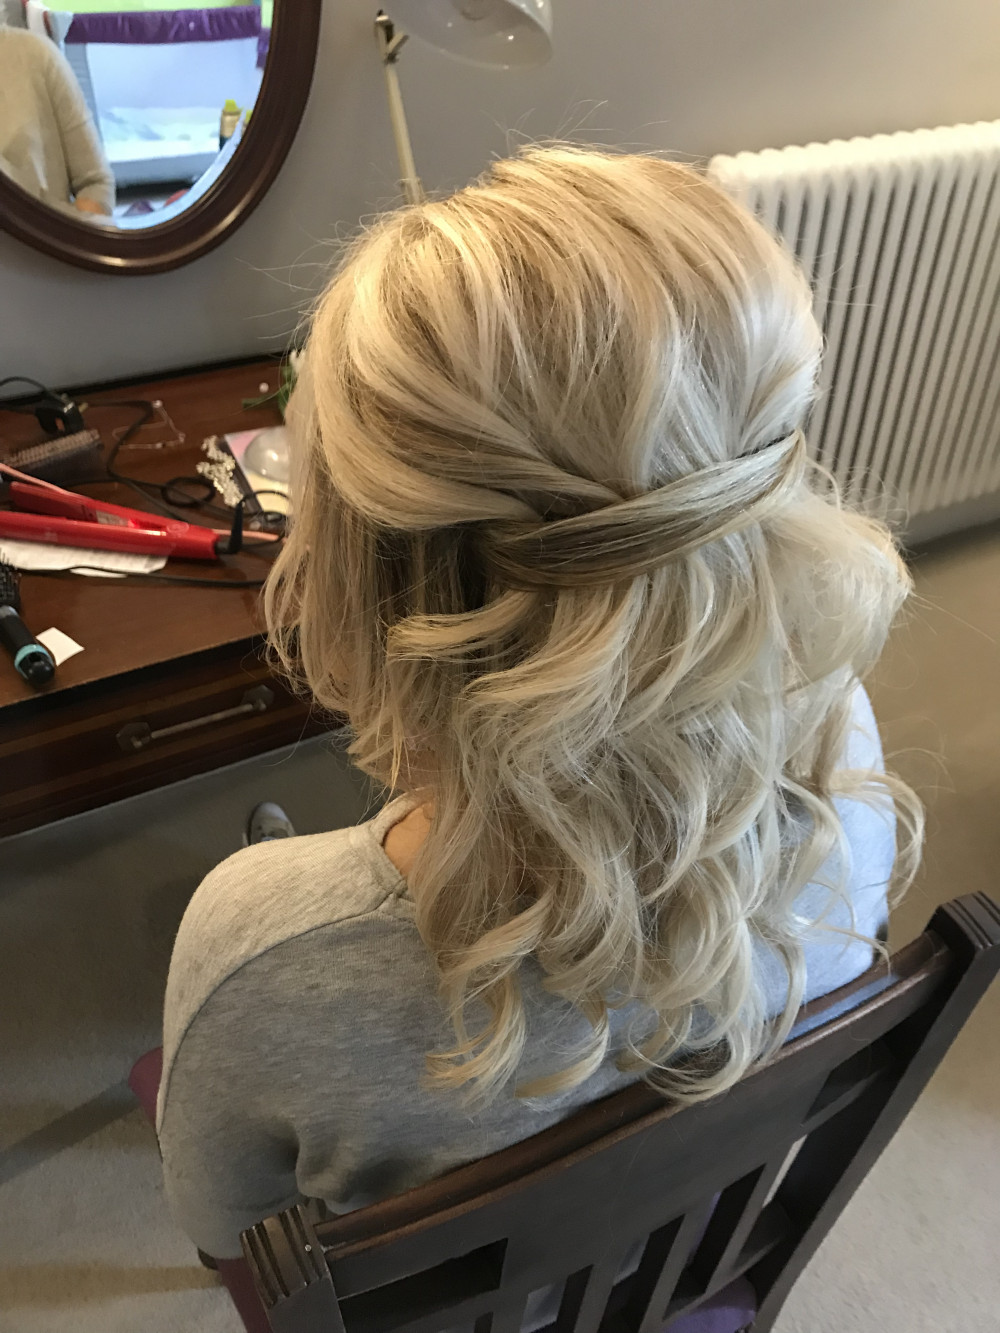 wedding guest and bridesmaids hair style simple but glam - Make Me Bridal Artist: Sapphire Styling hair and makeup . #glamorous #halfuphair #modernbride